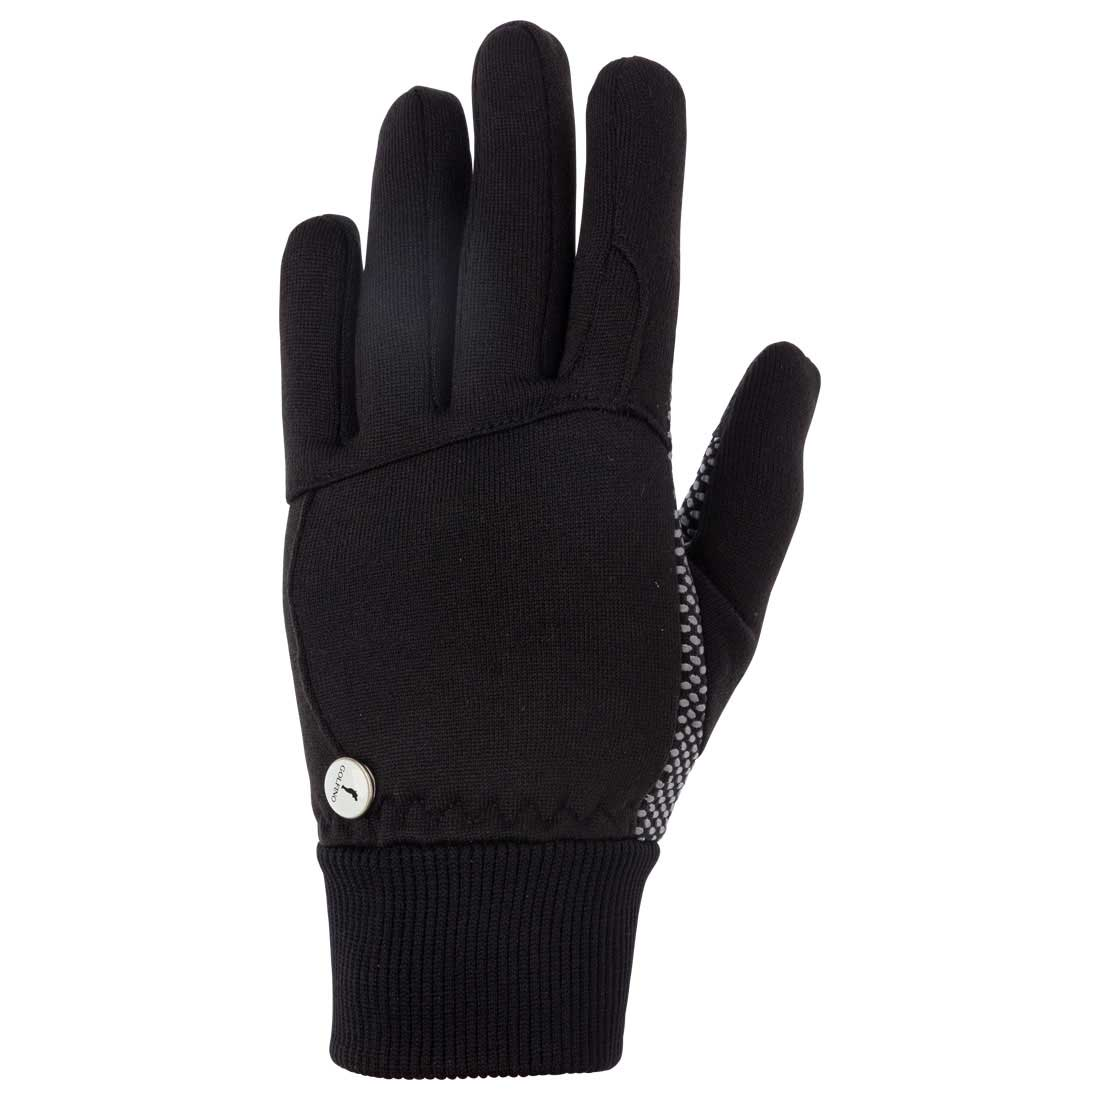 Ladies' winter gloves with ribbed cuffs and ball marker